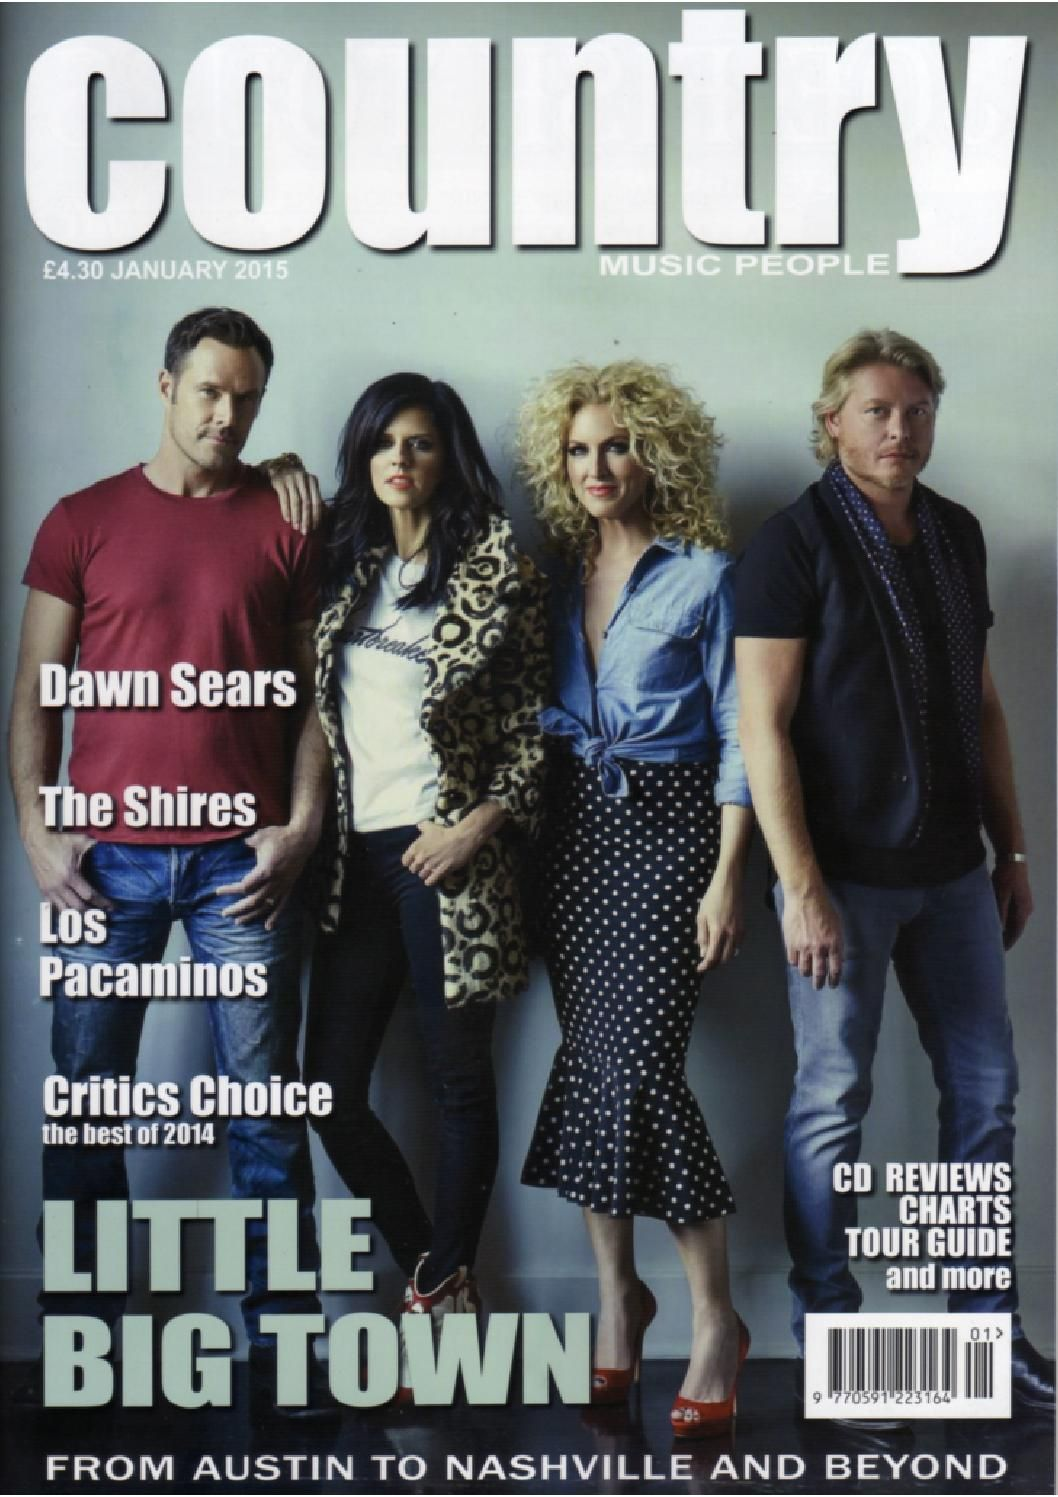 Country Music People January 2015 Magazines 6 Assortment